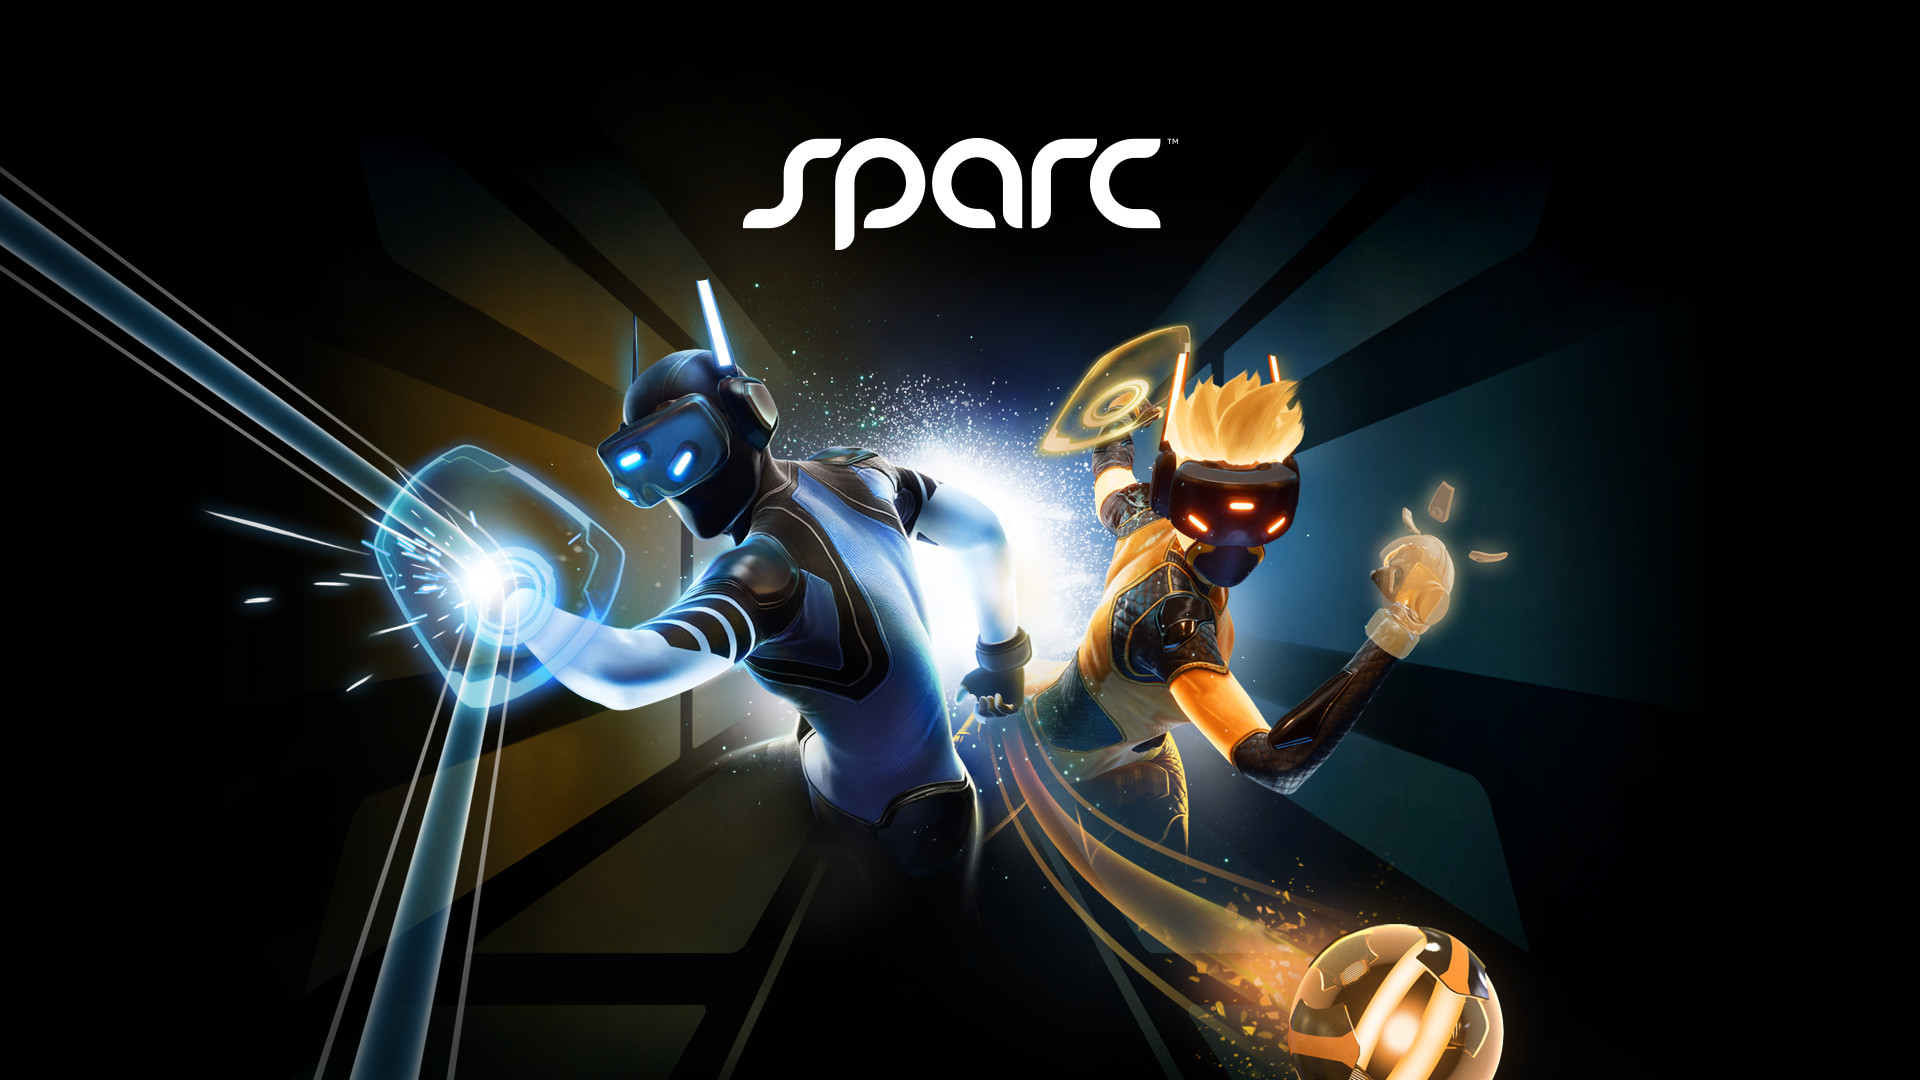 Sparc Key Art 2